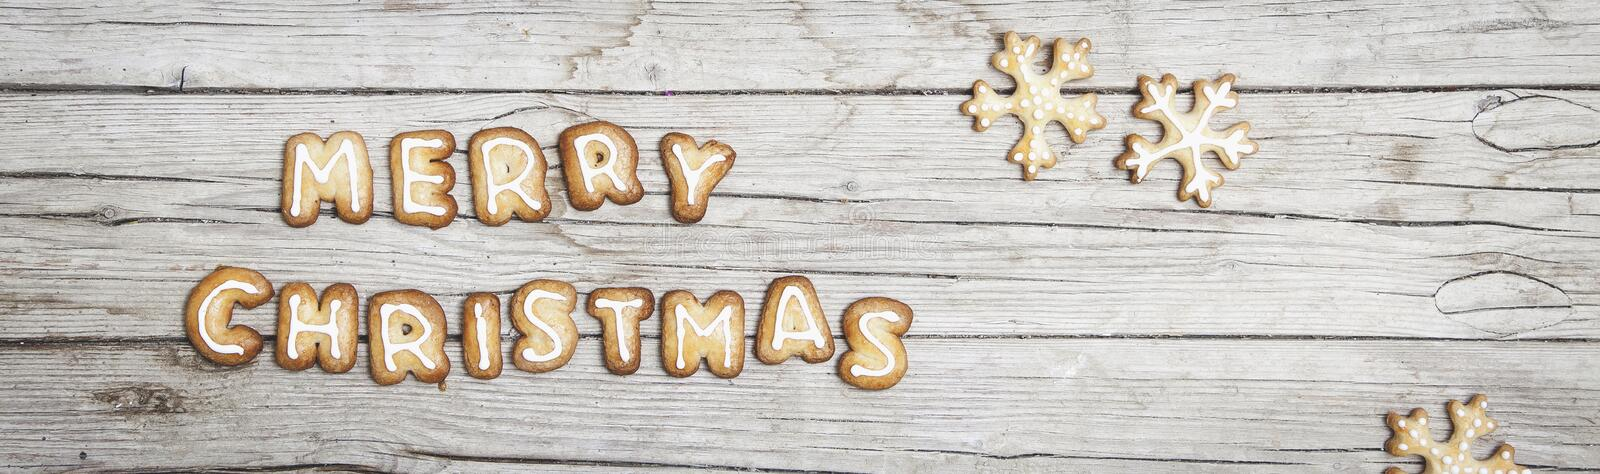 Christmassy grey wood background with gingerbread and Merry Christma`s letter royalty free stock image